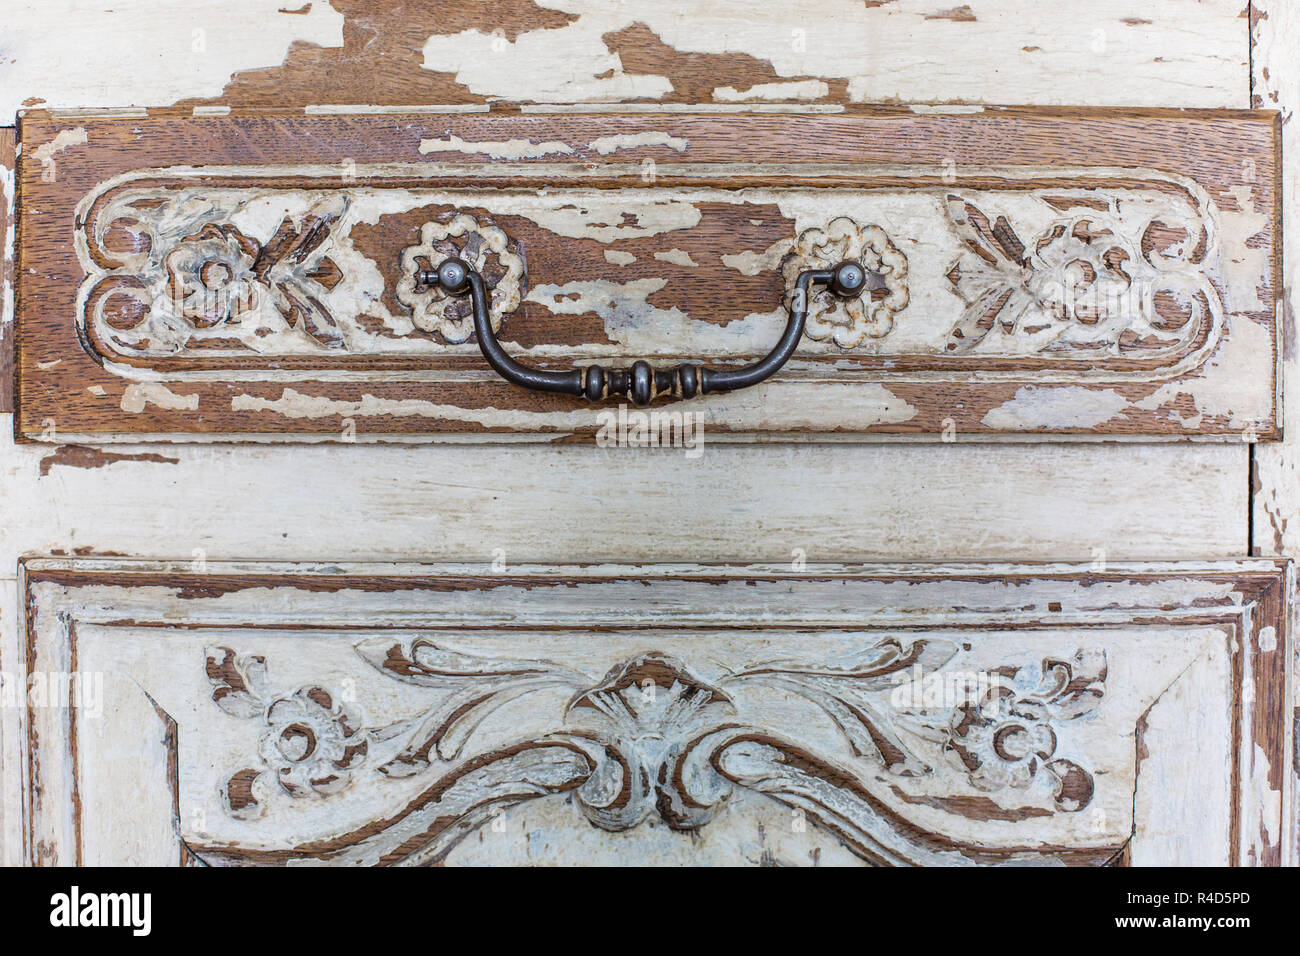 Old Wooden Antique Chest Of Drawers With Metal Handles